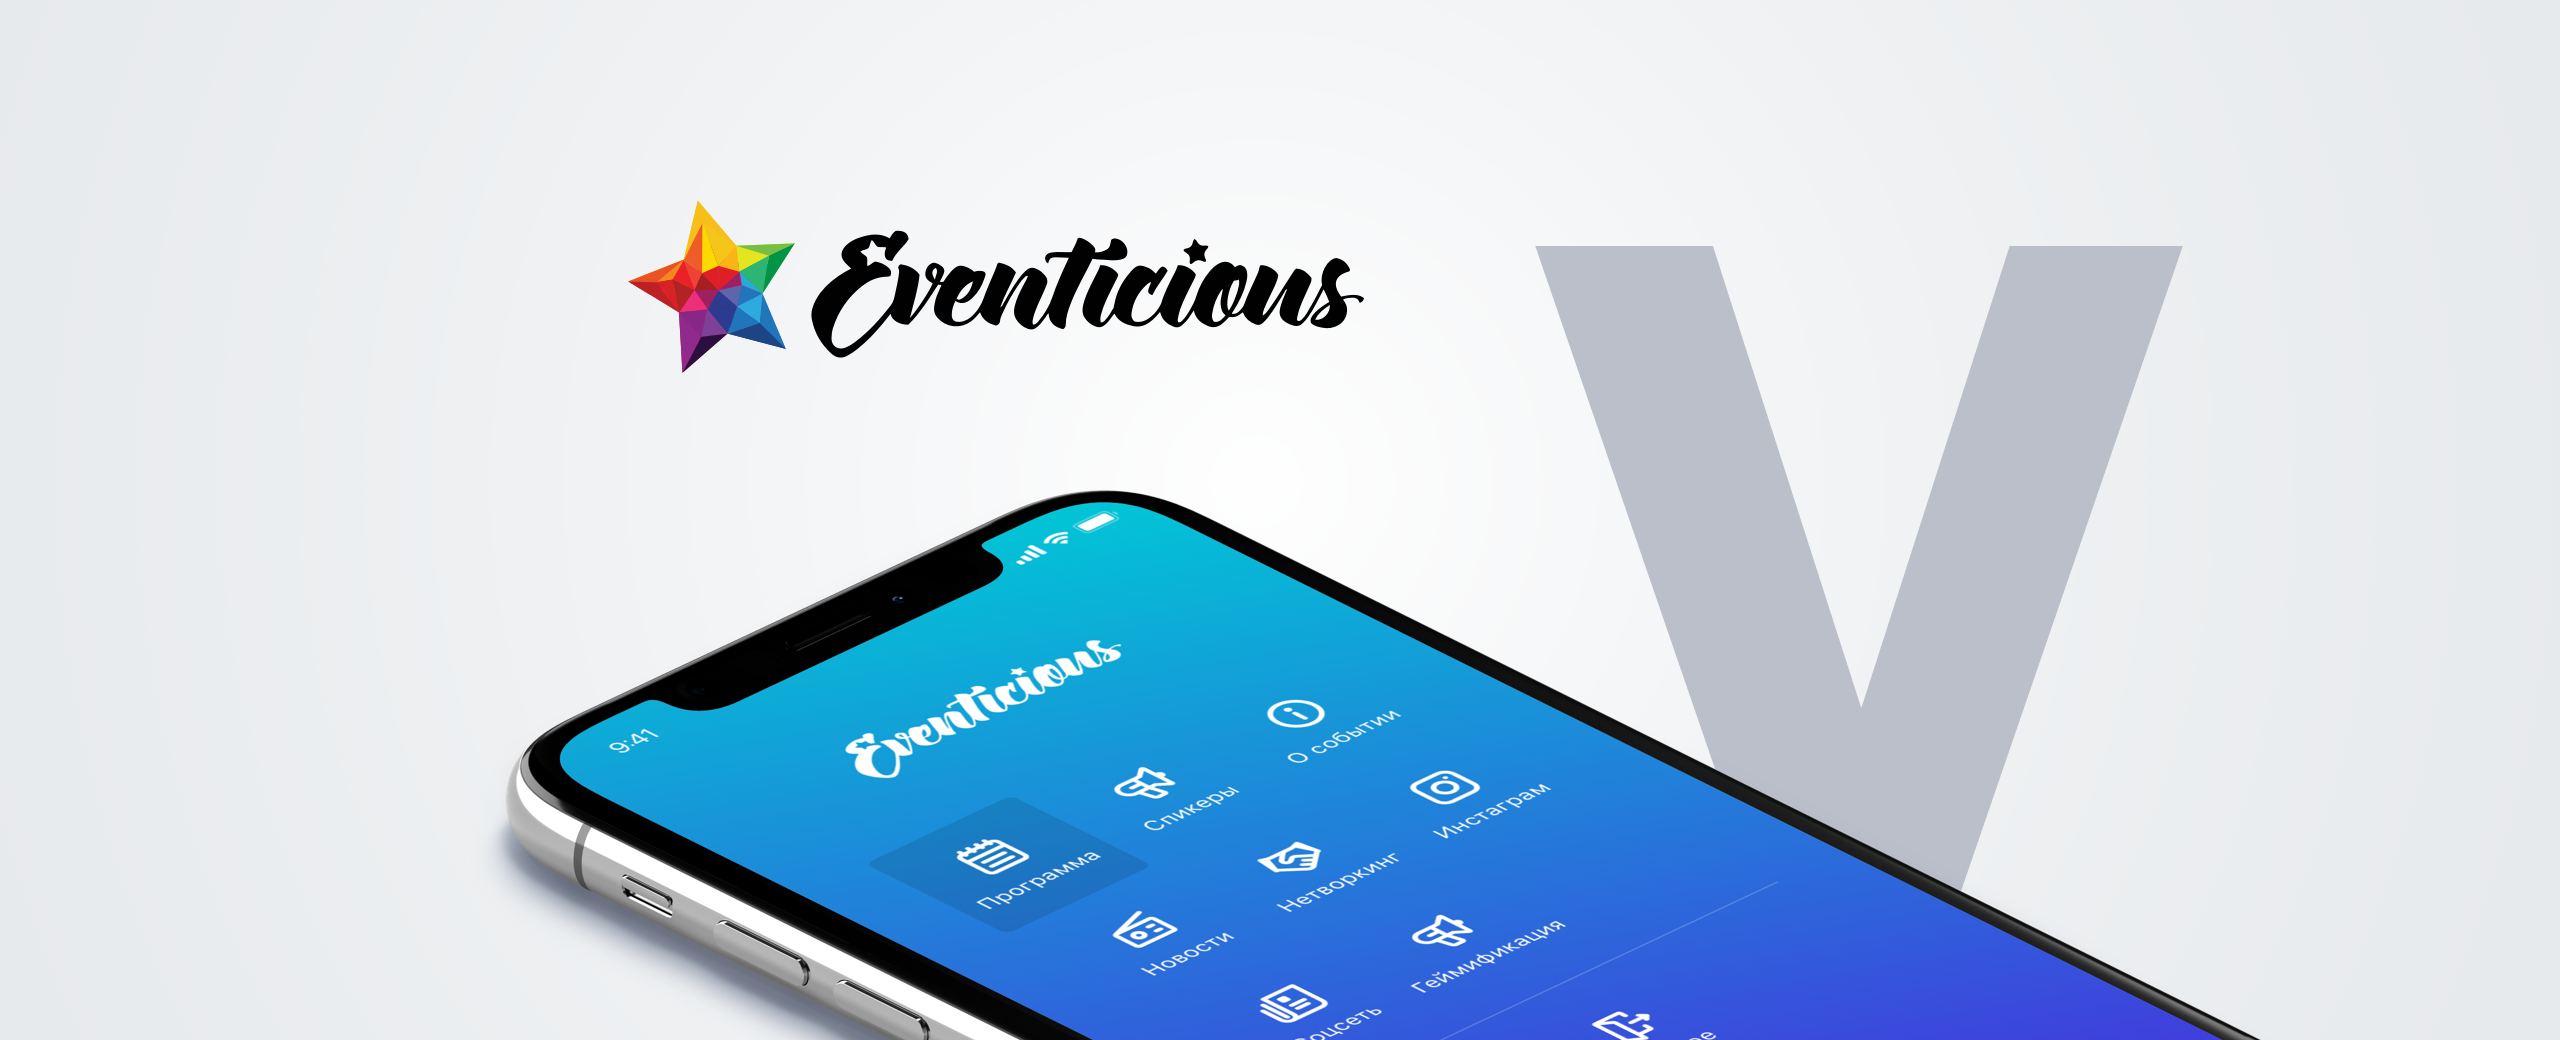 Eventicious V: it's like the iPhone X, except it's an app